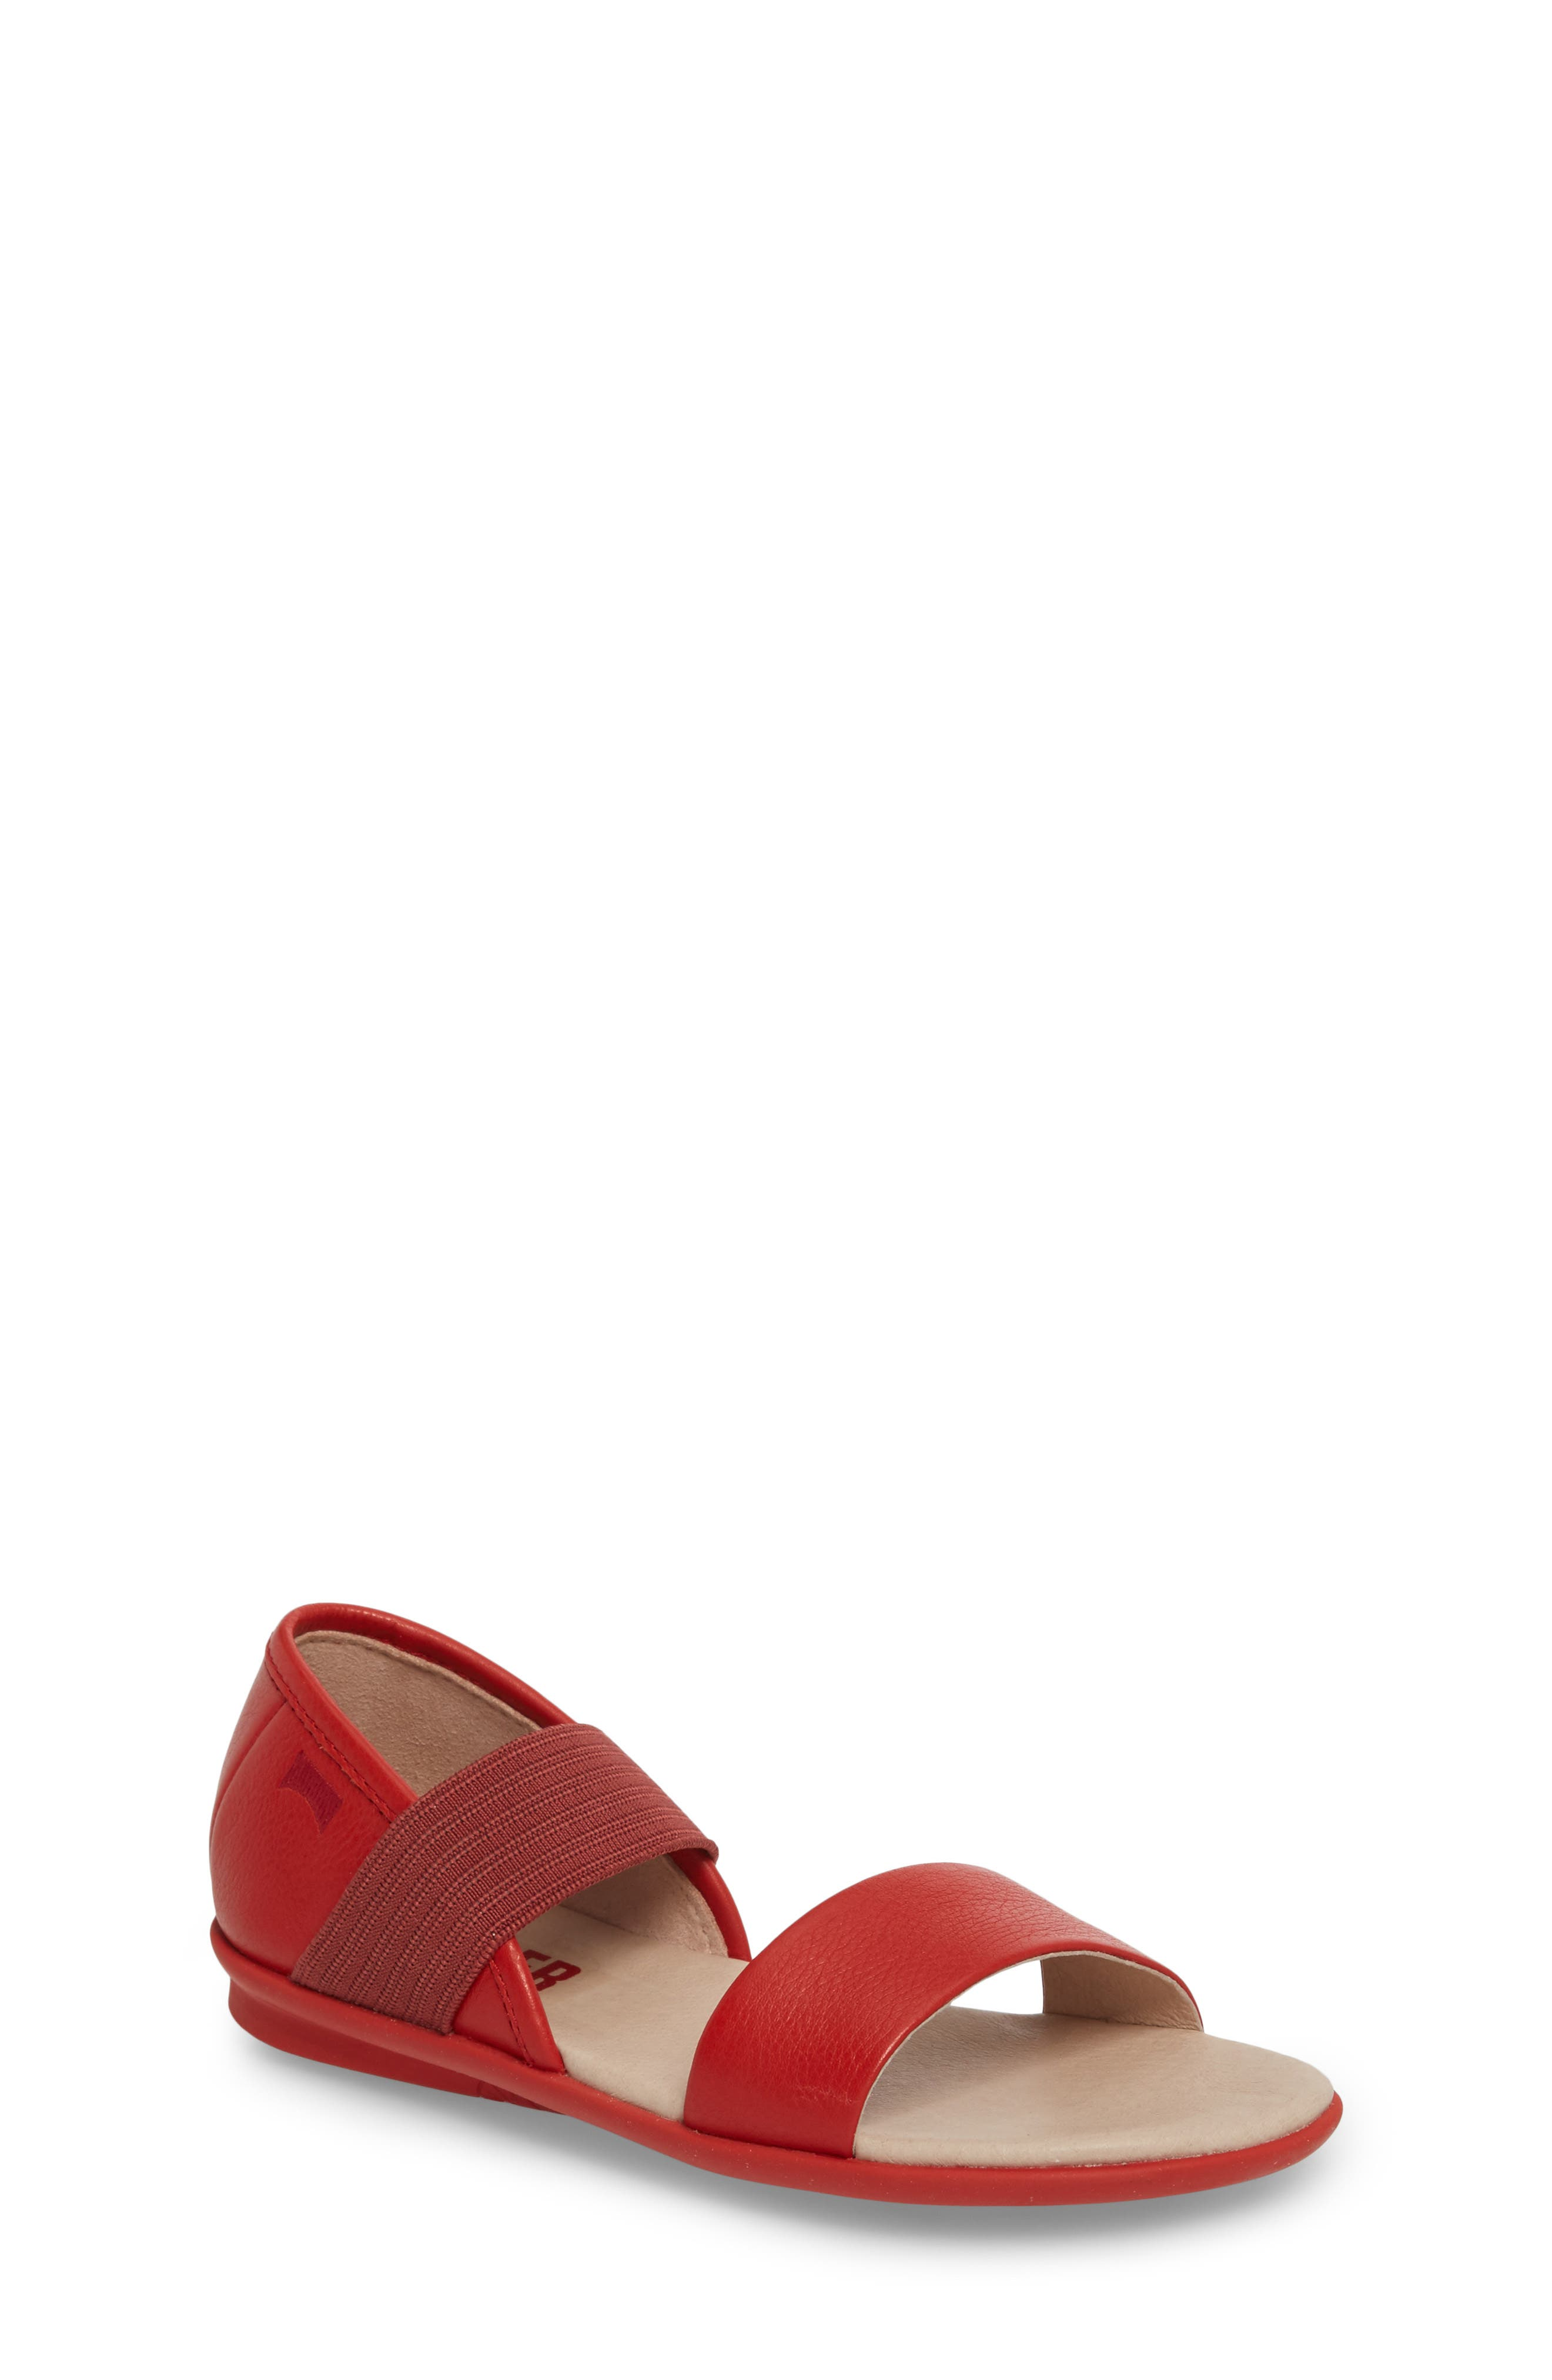 Right Sandal,                         Main,                         color, Red